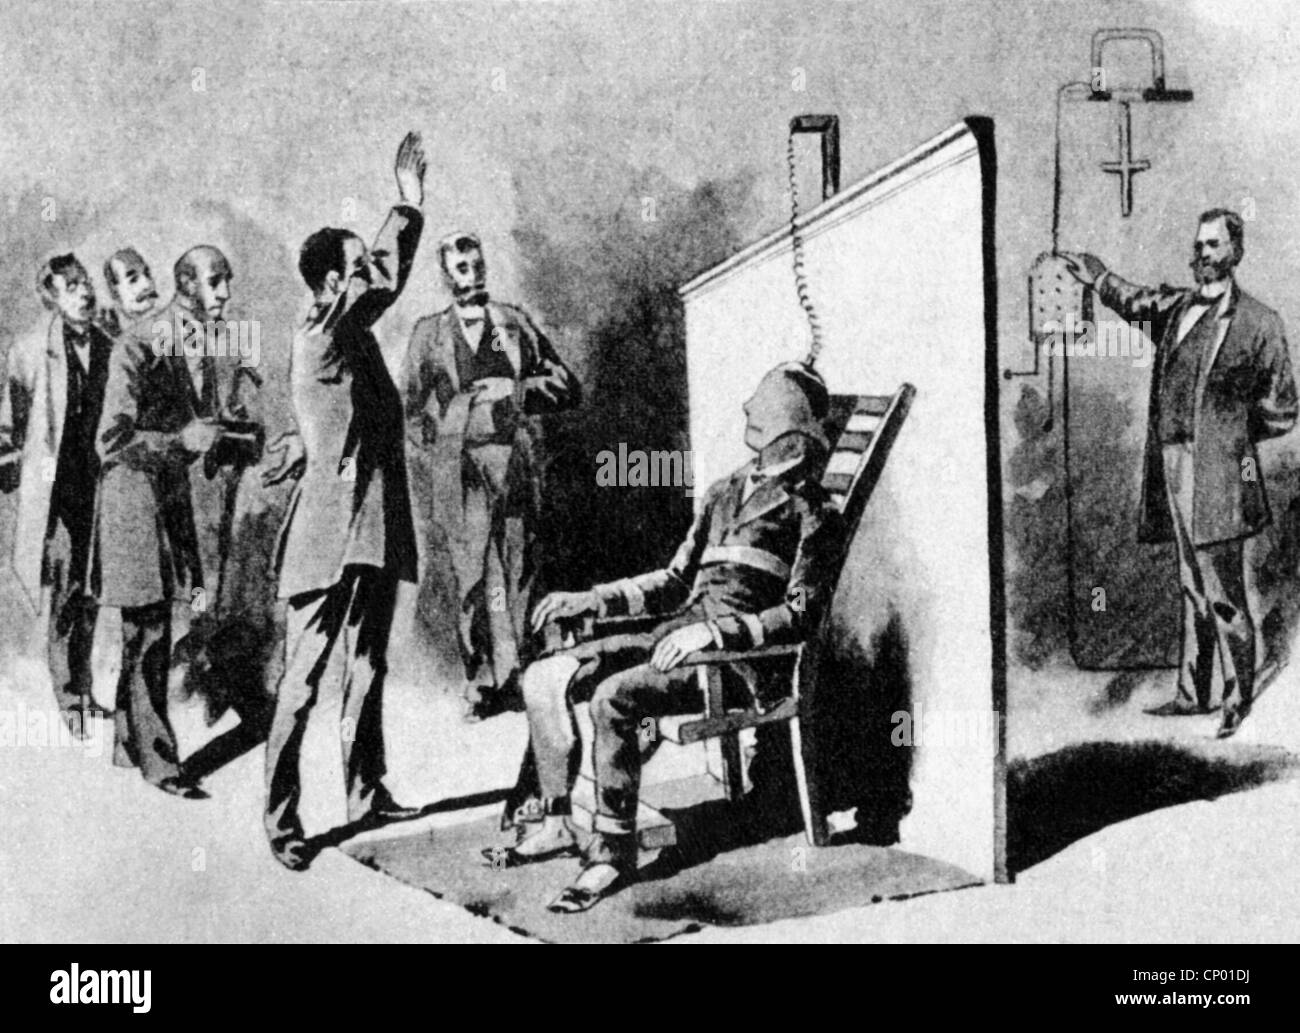 First electric chair victim - Justice Penitentiary System Electrical Chair Execution Of William Kemmler Auburn Prison